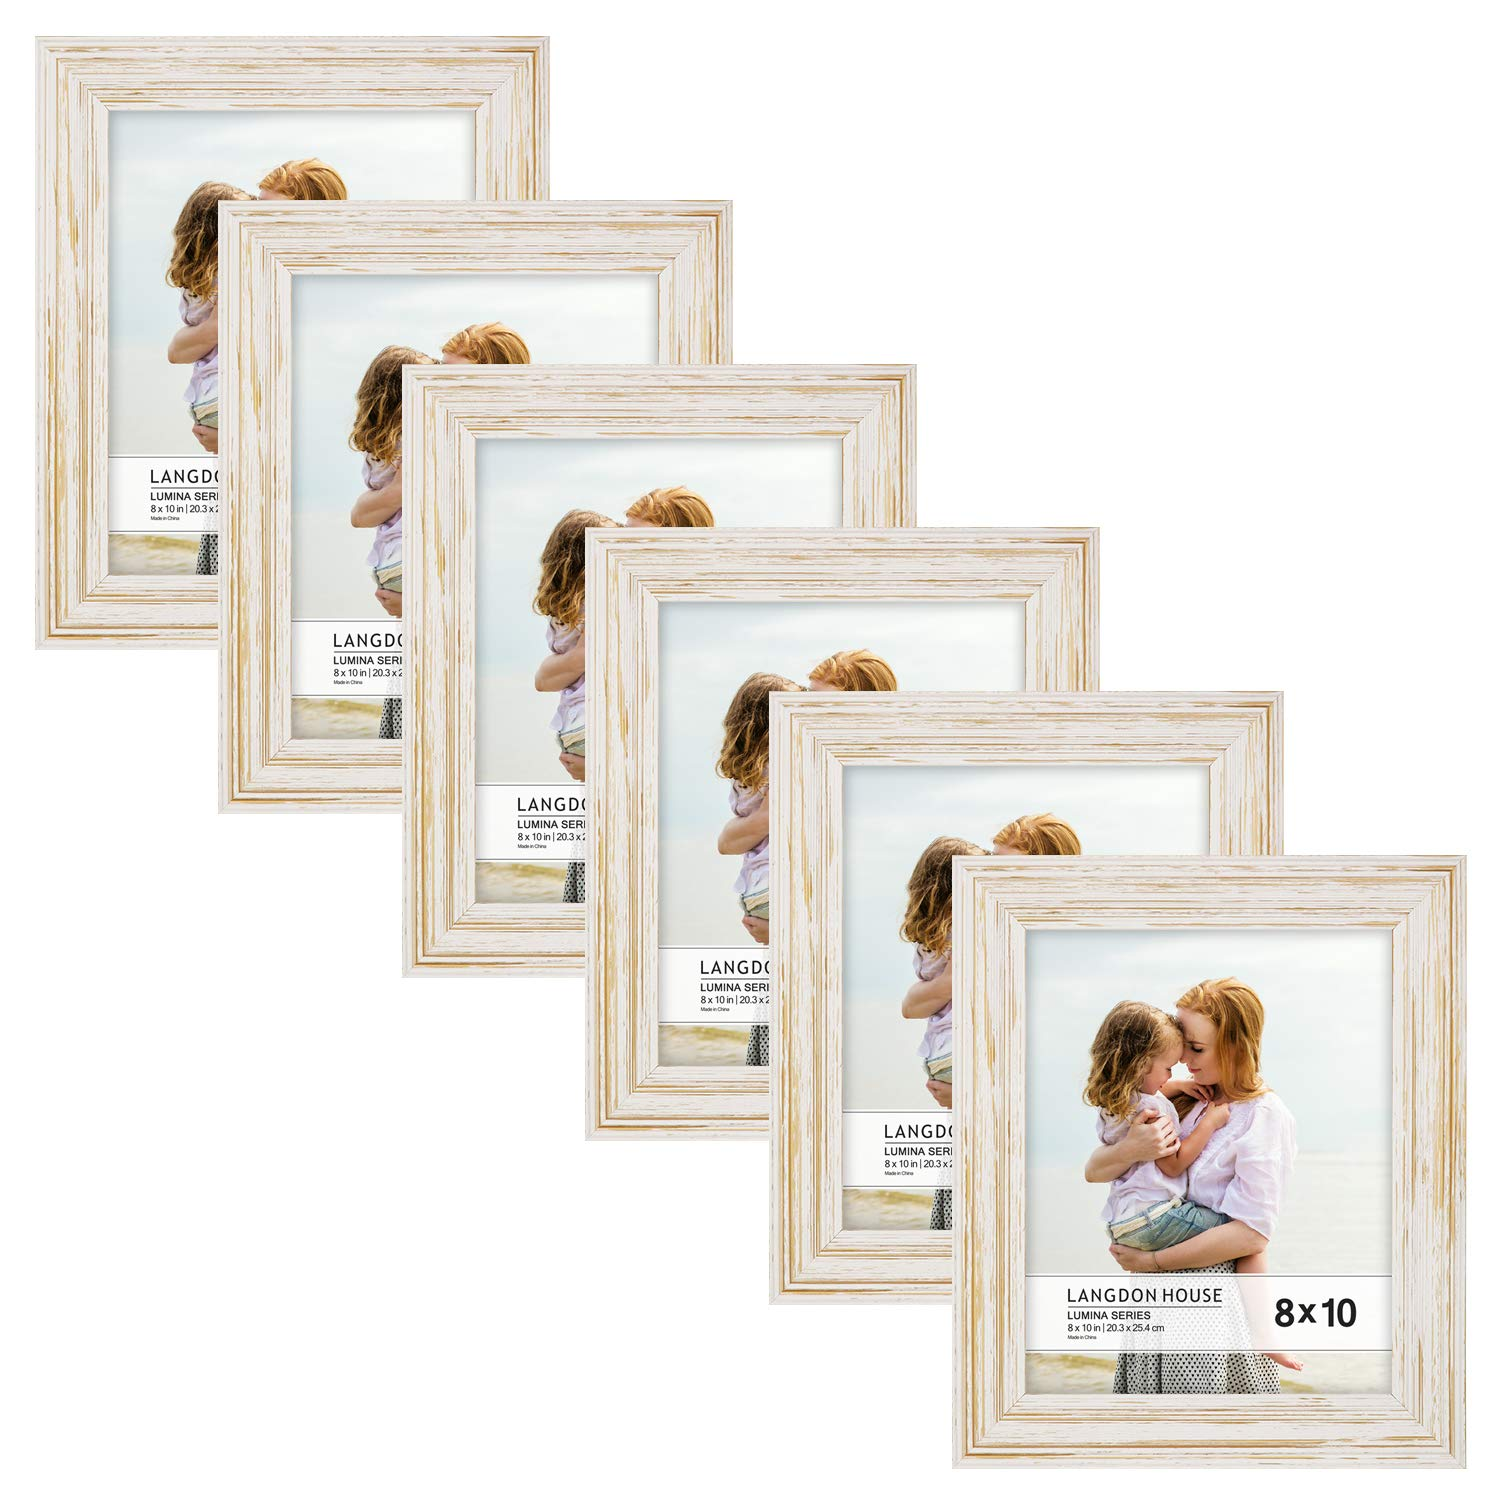 Langdon House 8x10 Real Wood Picture Frames (6 Pack, Weathered White - Gold Accents), White Wooden Photo Frame 8 x 10, Wall Mount or Table Top, Set of 6 Lumina Collection by Langdon House